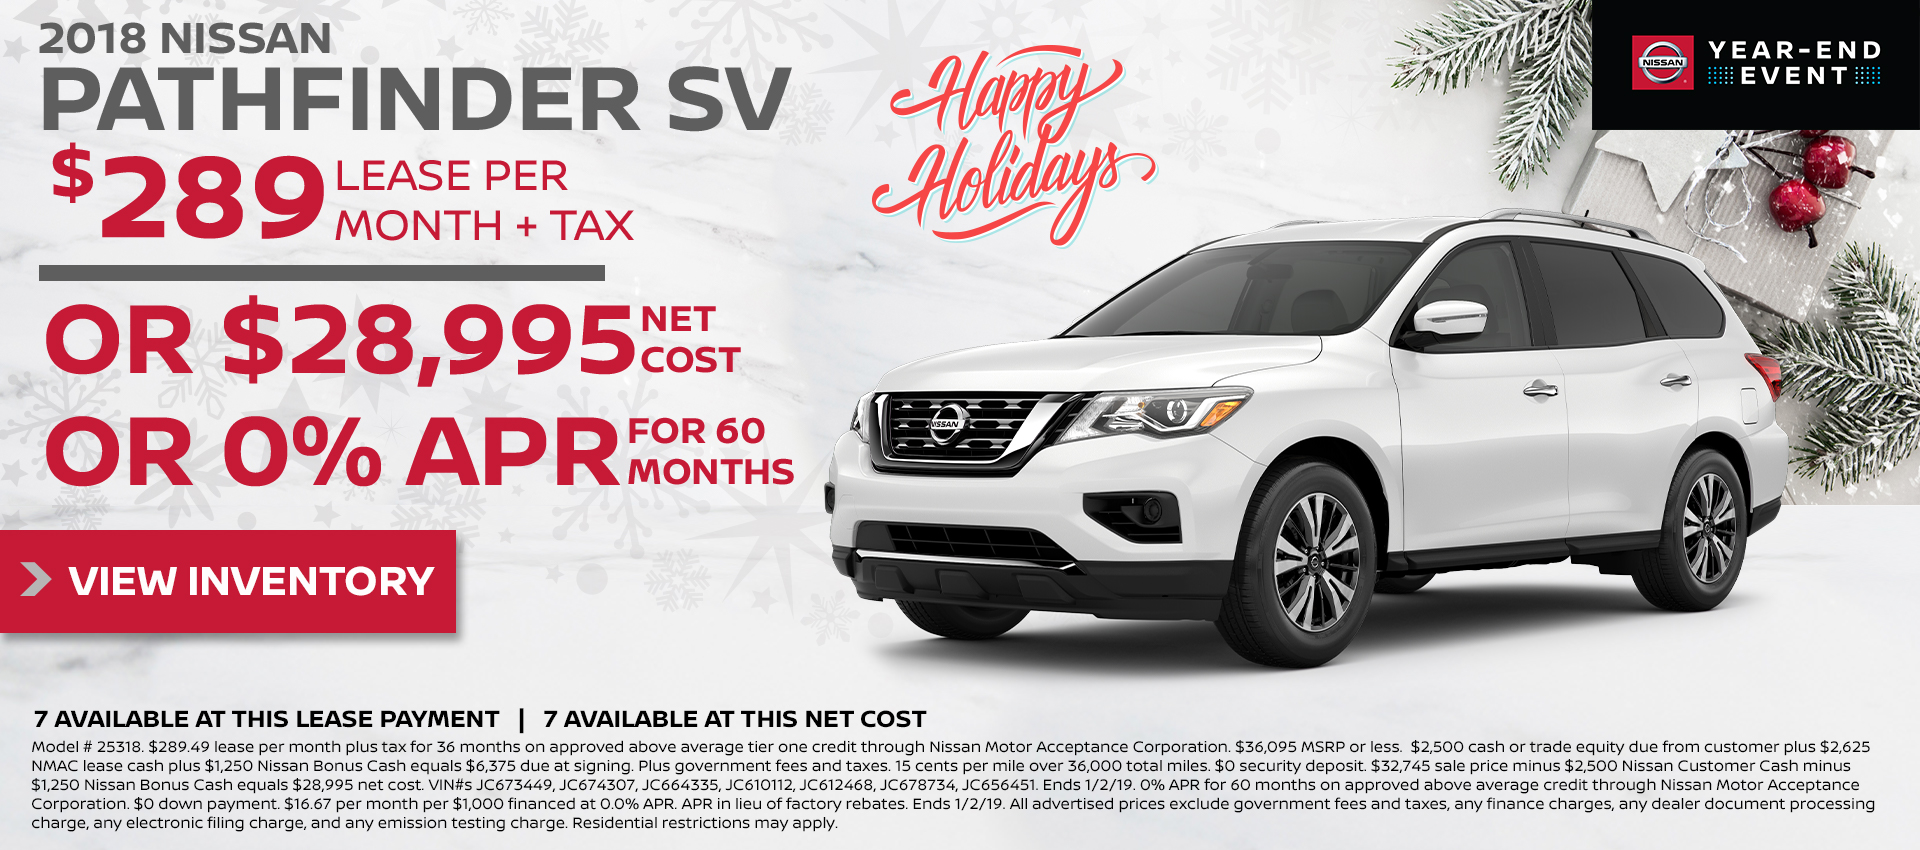 Mossy Nissan - Nissan Pathfinder $199 Lease HP